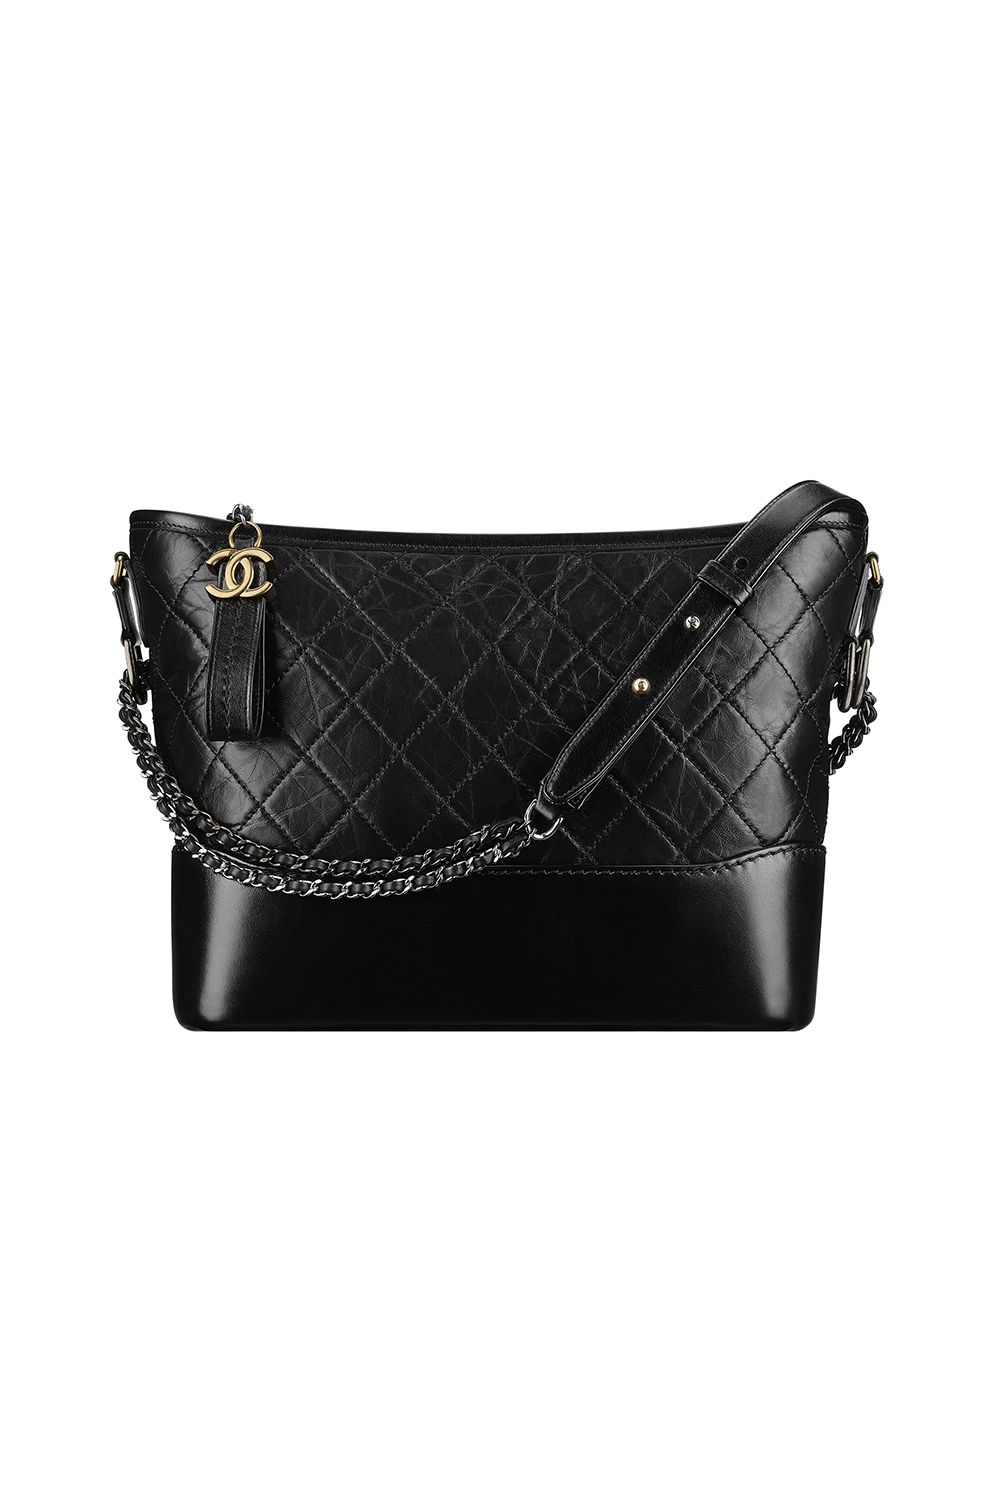 <p>The biggest launch since its cult-favorite Boy bag, expect to see Chanel's new Gabrielle bag everywhere.</p><p>$3,600, select Chanel boutiques nationwide. <br></p>